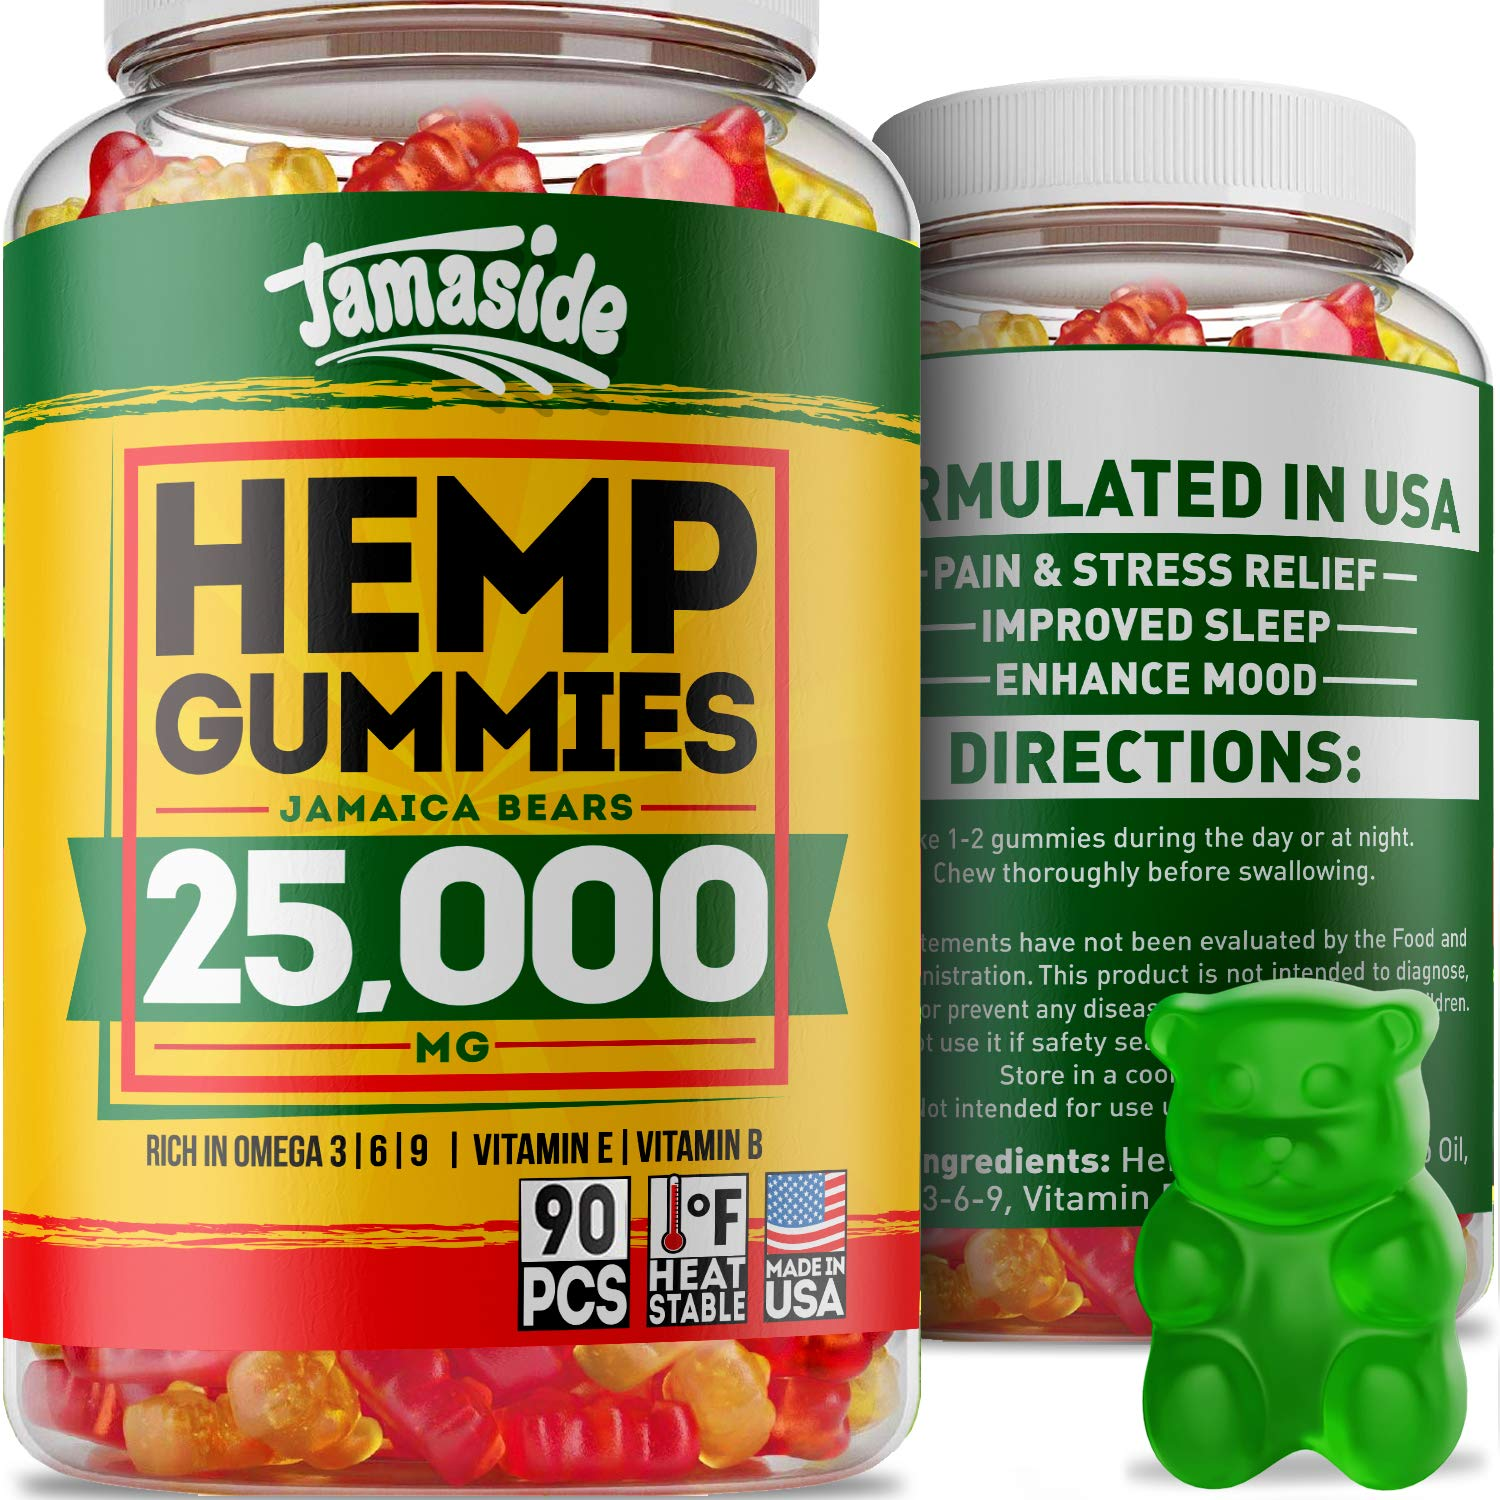 Review of Hemp Gummies 25000 MG - Made in USA - 277 MG Hemp - Anxiety & Stress Relief, by Jamaside